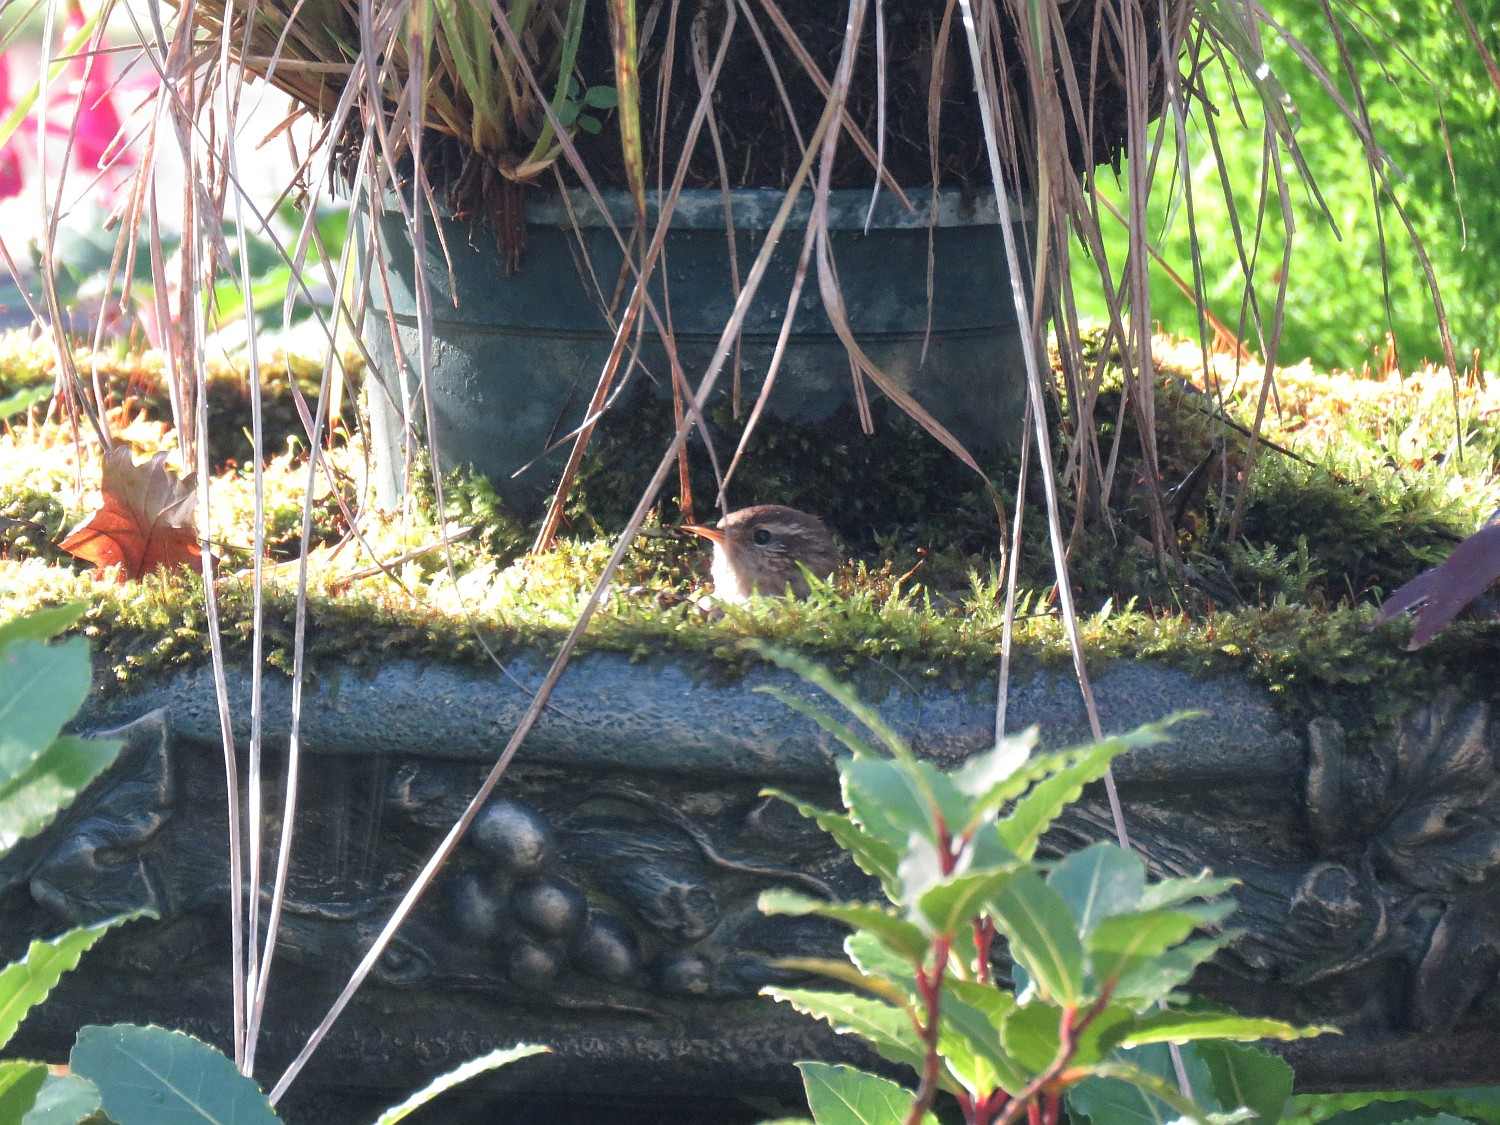 Home again to Southwinds where Ed got this shot of a tiny wren who has been serenading us each day - taking a bath in the mossy birdbath. Look for a small bird head in the center of the photo.